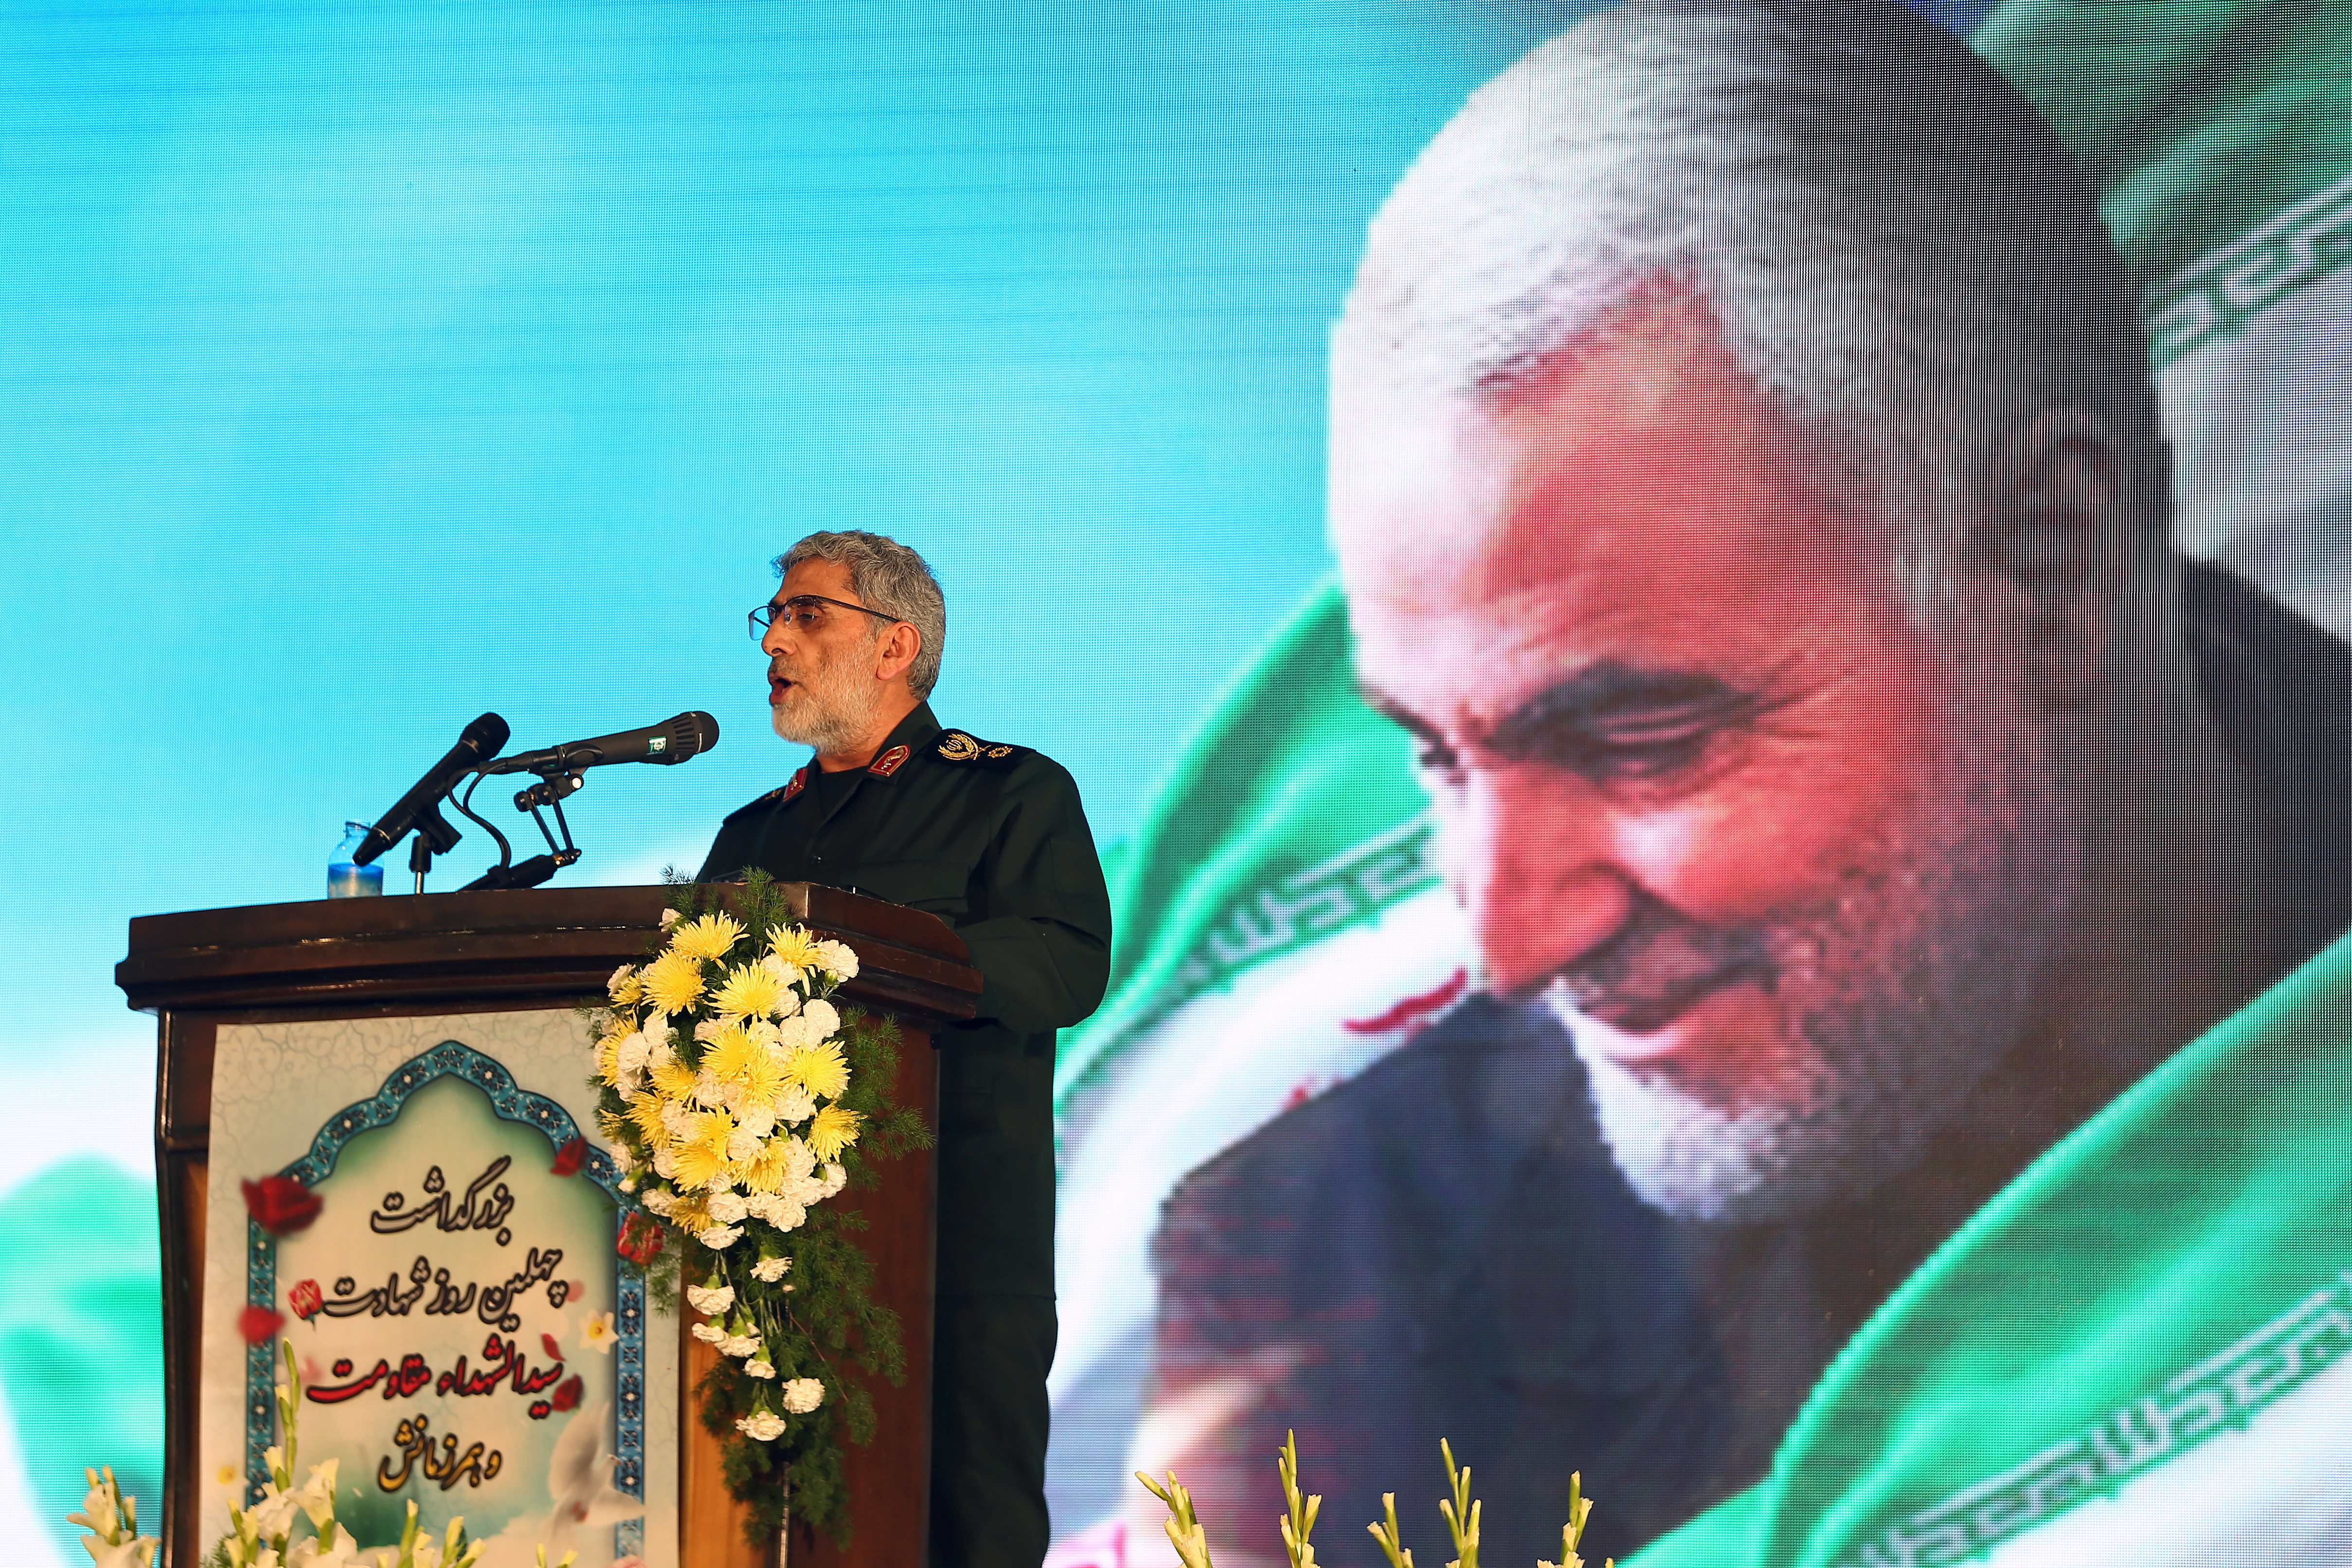 Brigadier General Esmail Ghaani, the newly appointed commander of Iran's Quds Force, reads the will of Major General Qassem Soleimani, who was killed in a U.S. air strike at Baghdad Airport, during the forty day memorial at the Grand Mosalla in Tehran, Iran February 13, 2020. Nazanin Tabatabaee/WANA (West Asia News Agency) via REUTERS